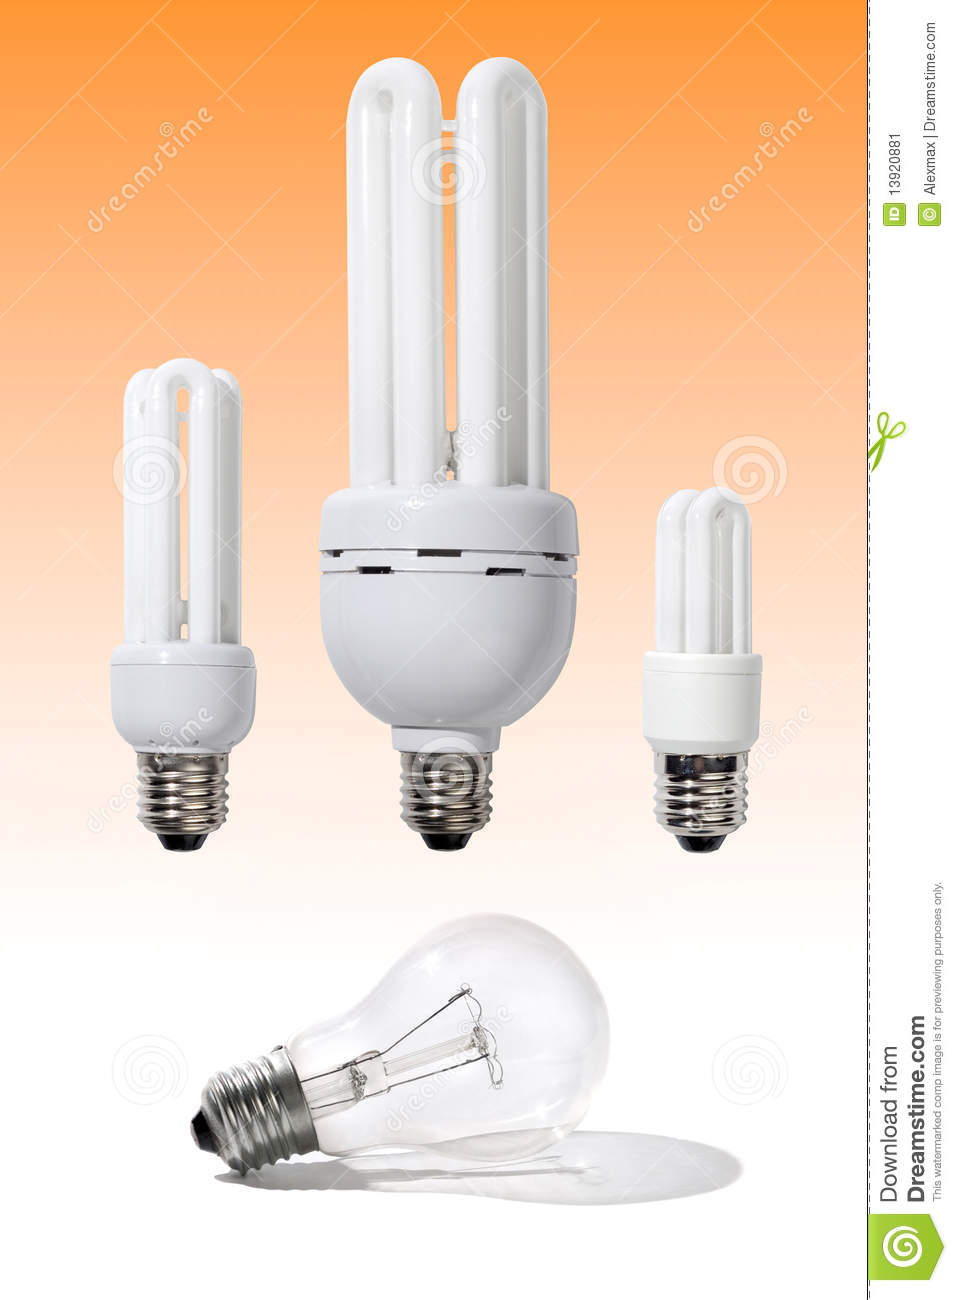 Energy Efficient Light Bulbs Stock Image Image 13920881